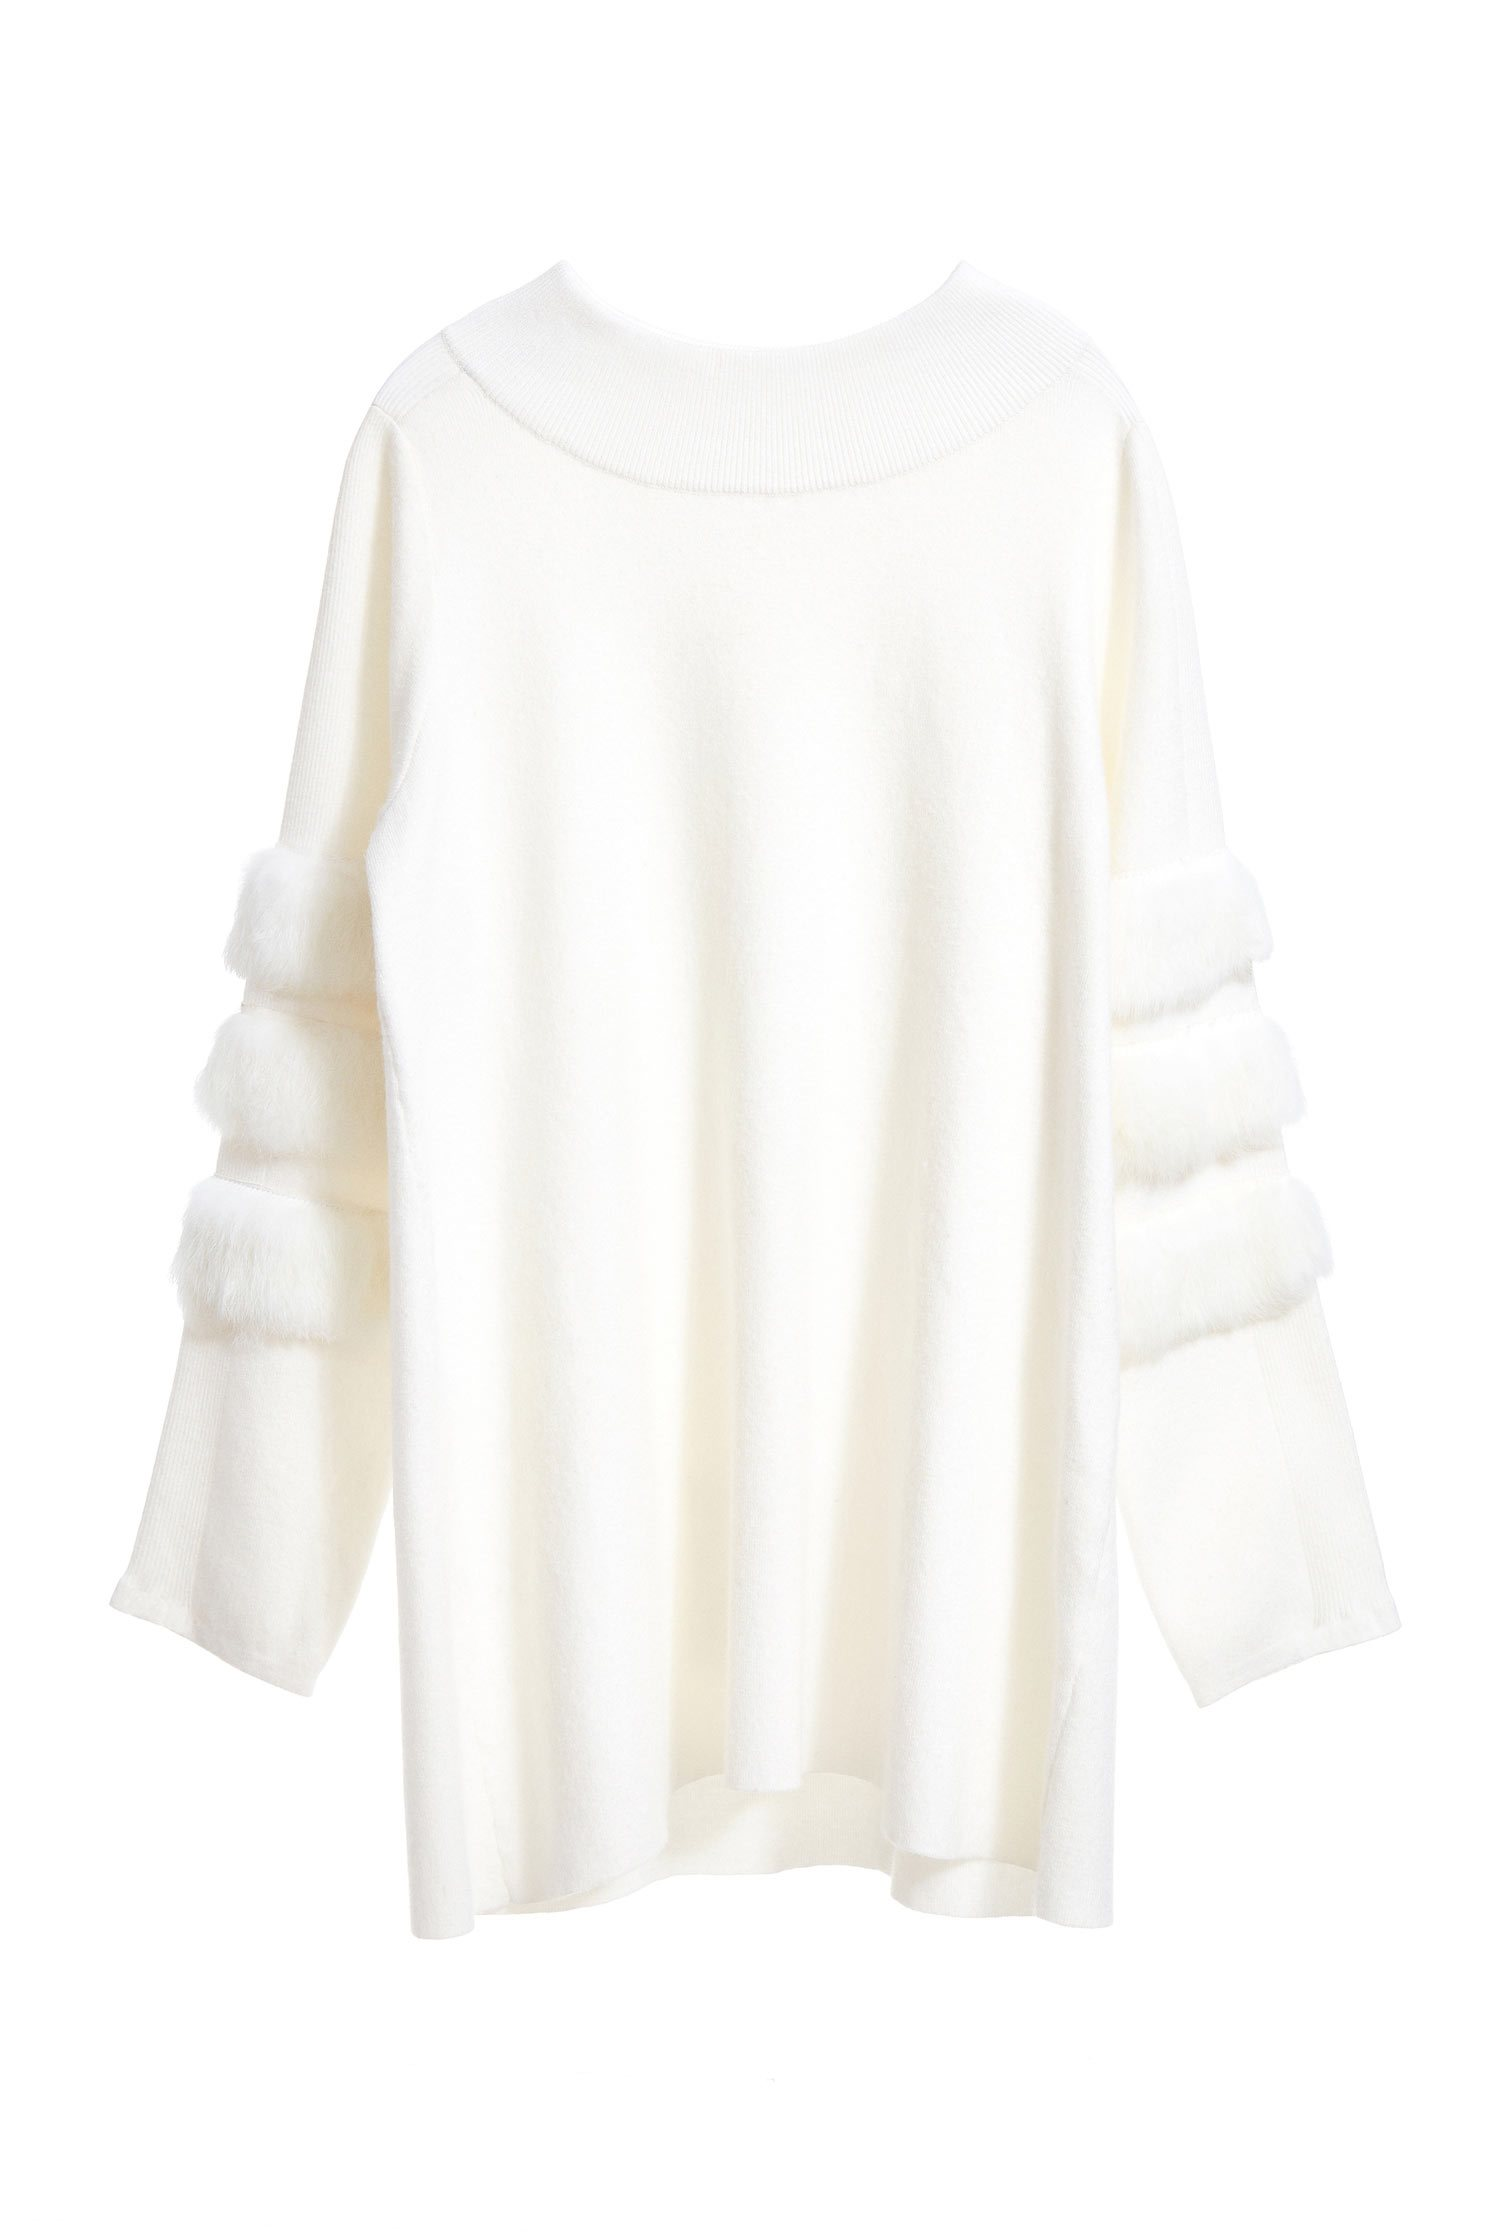 Different material stitching knit long-sleeved tops,top,whitetop,knitting,knittedtop,knittedtop,longsleevetop